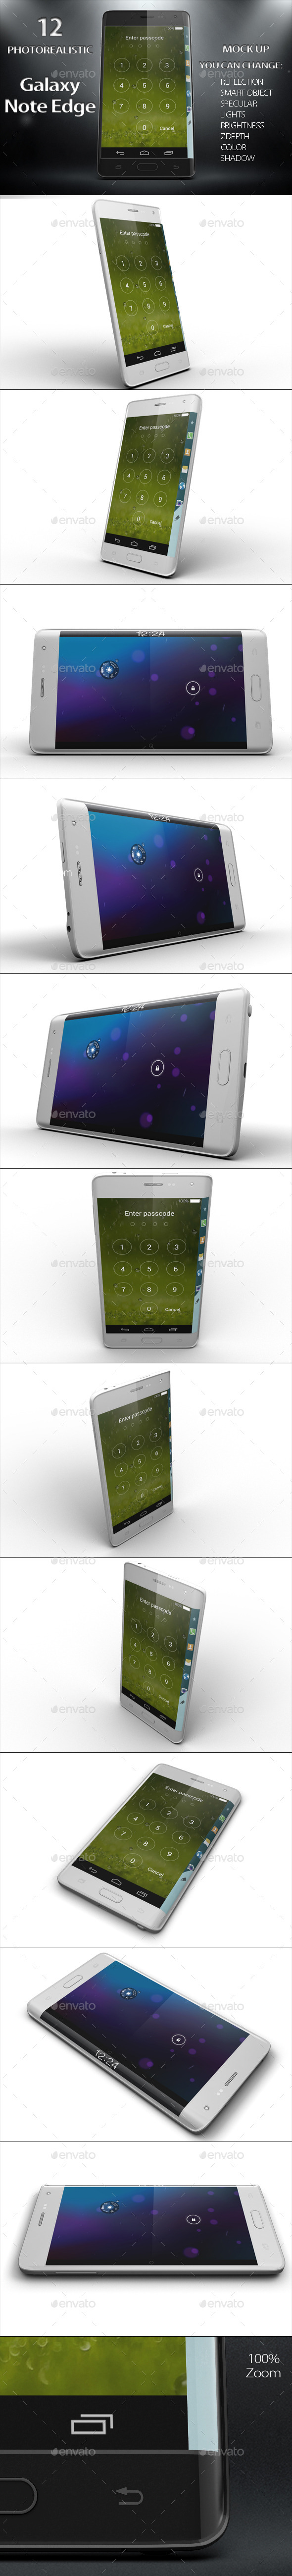 Galaxy Note Edge Smartphone Mock Up Vol.2 - Mobile Displays